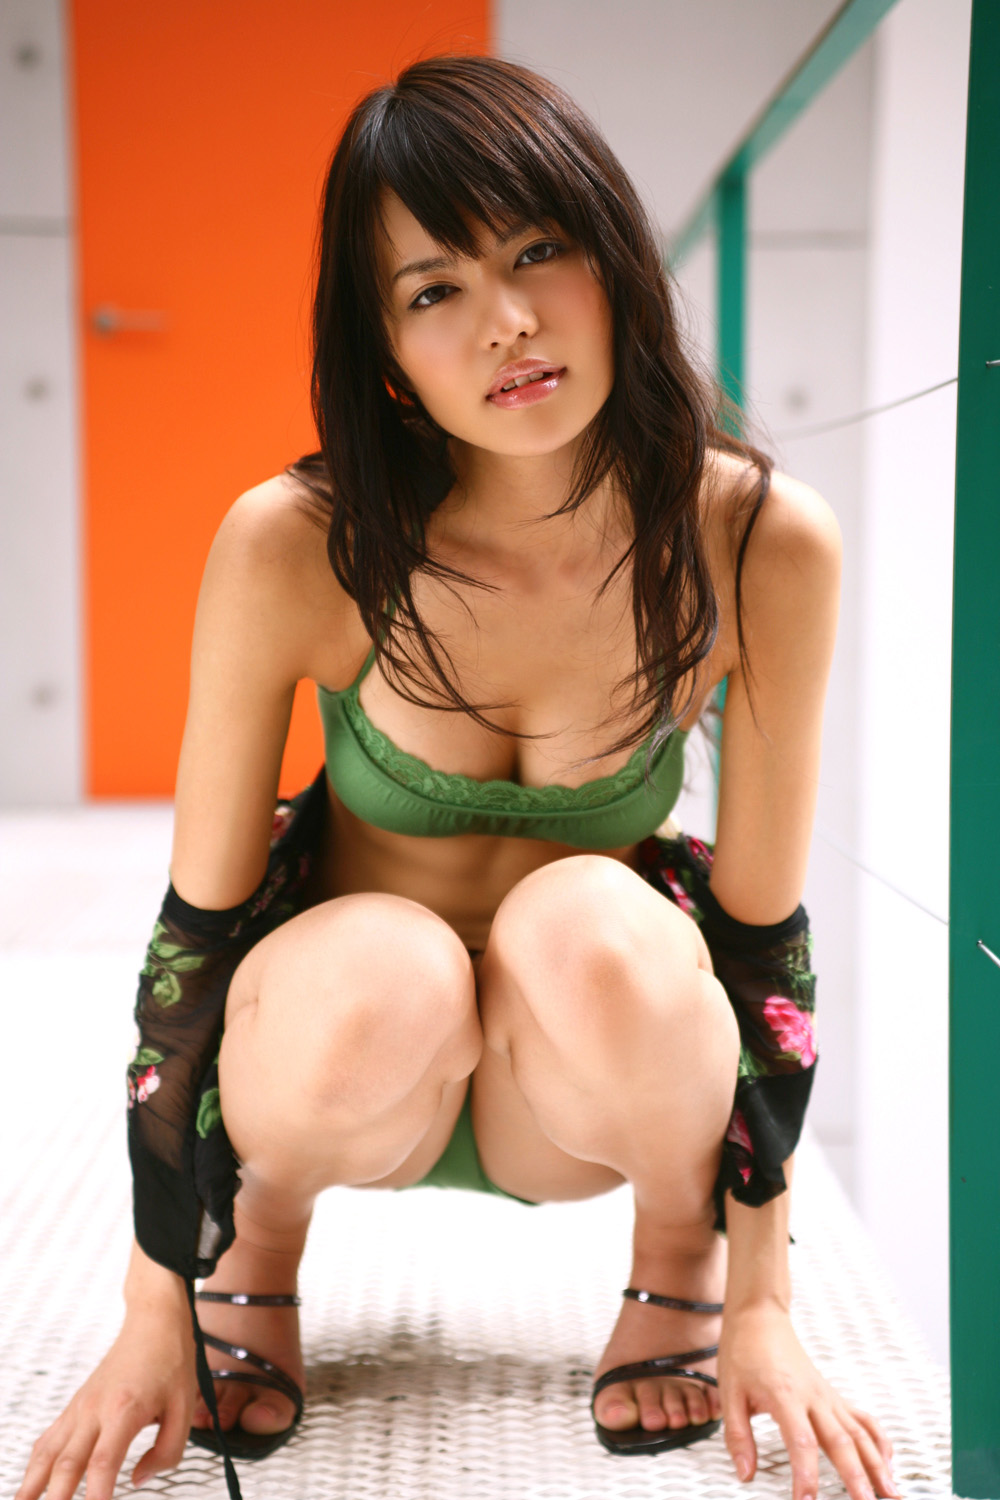 Yuriko Shiratori - Wallpaper Gallery